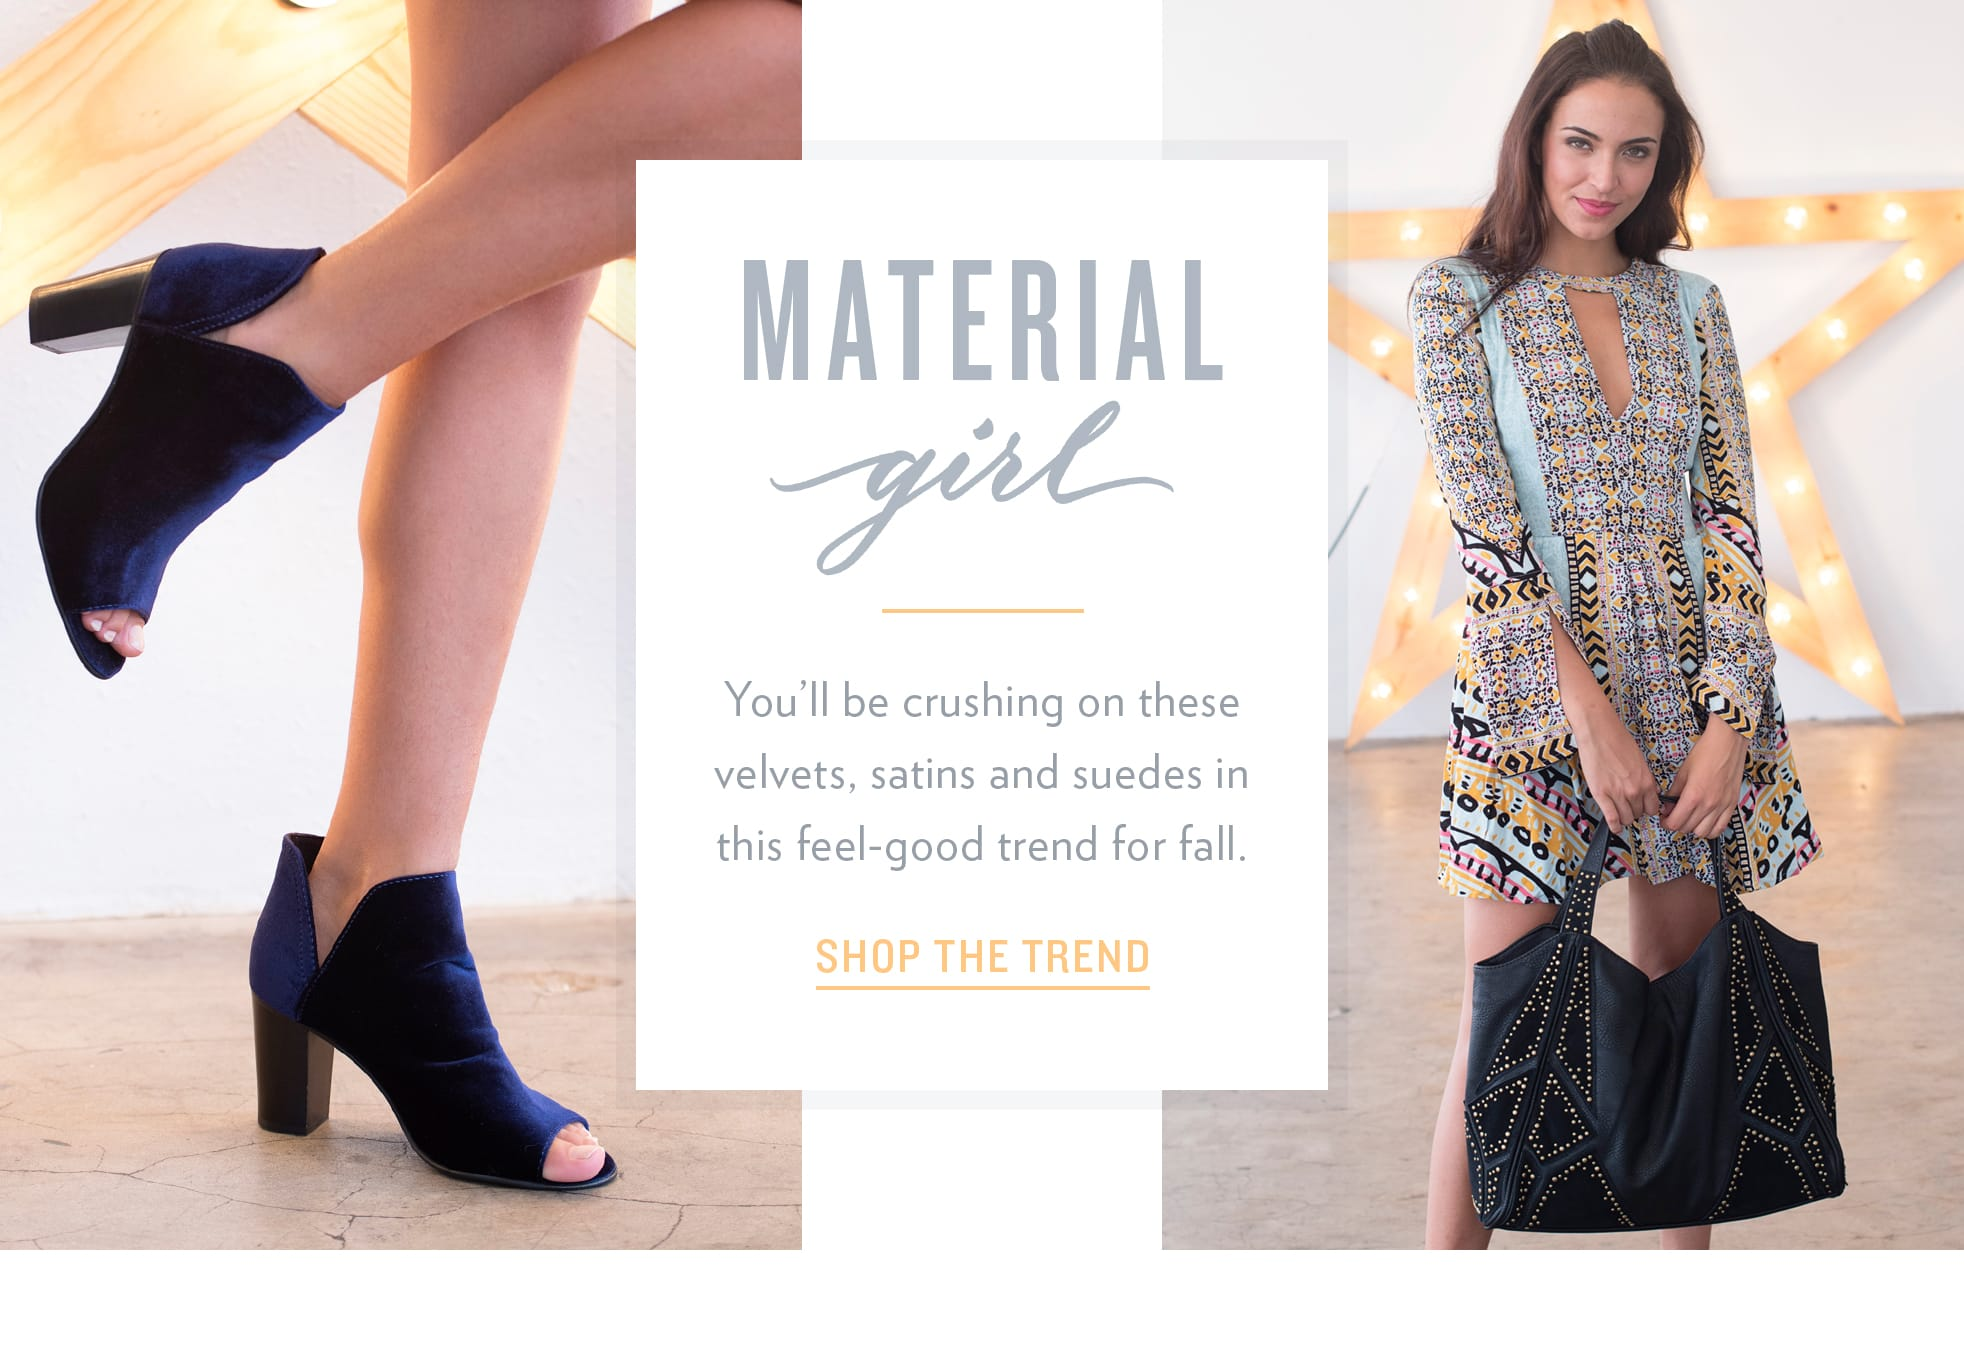 Fashion Trend: Material Girl